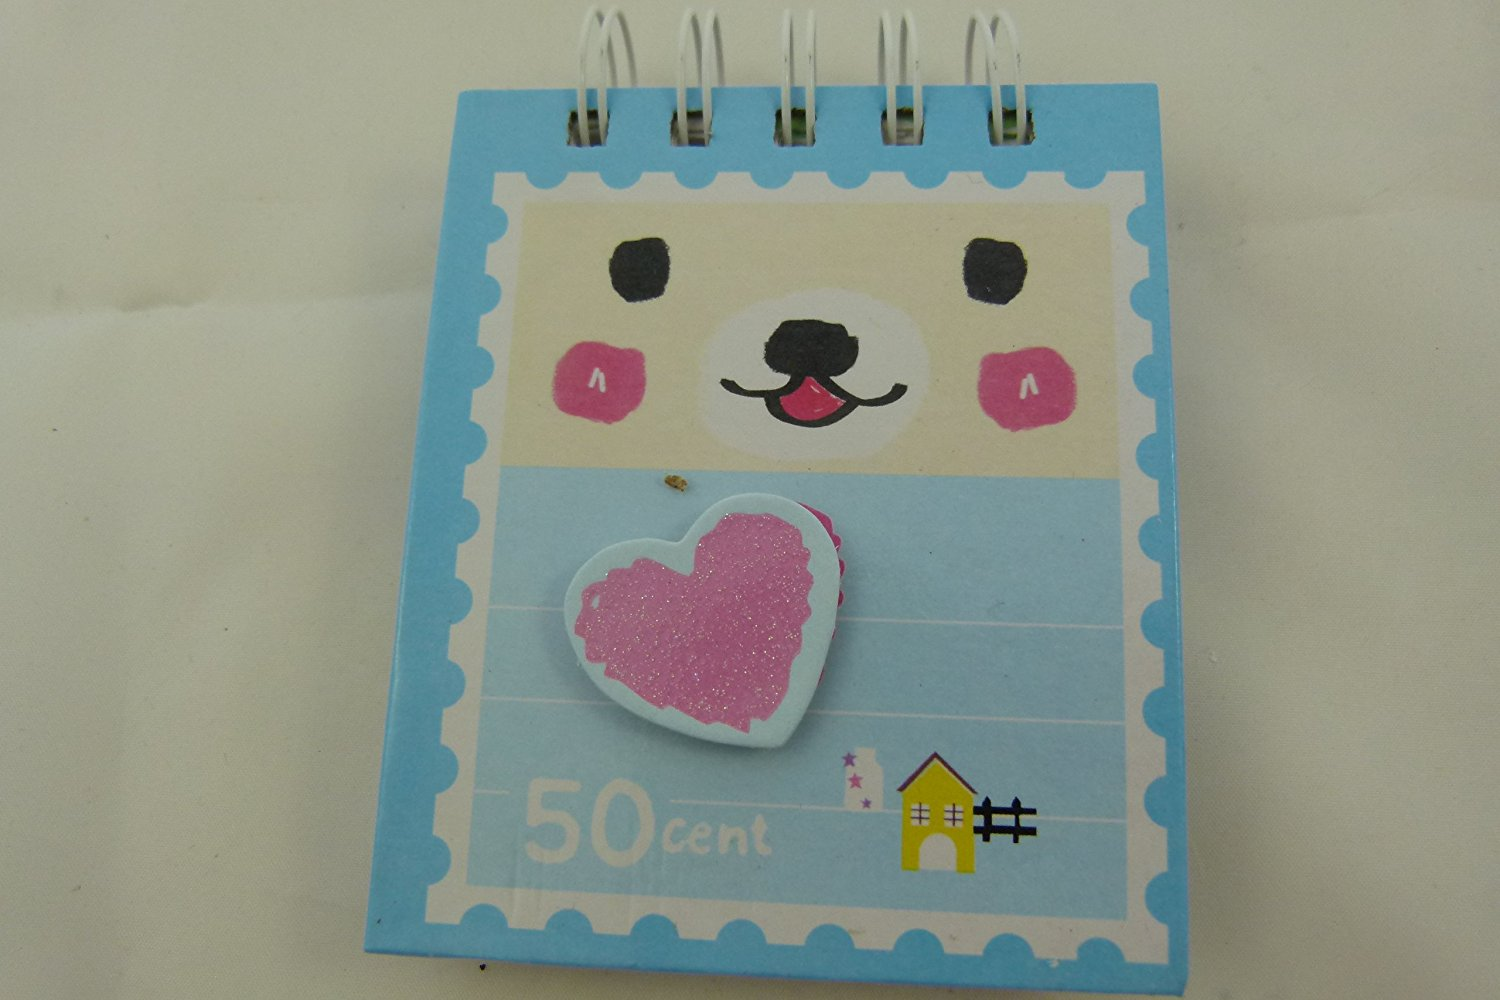 Ring Bound Hardback Animal Face Notebook (with die cut embellishments cover) - Heart Embellishment